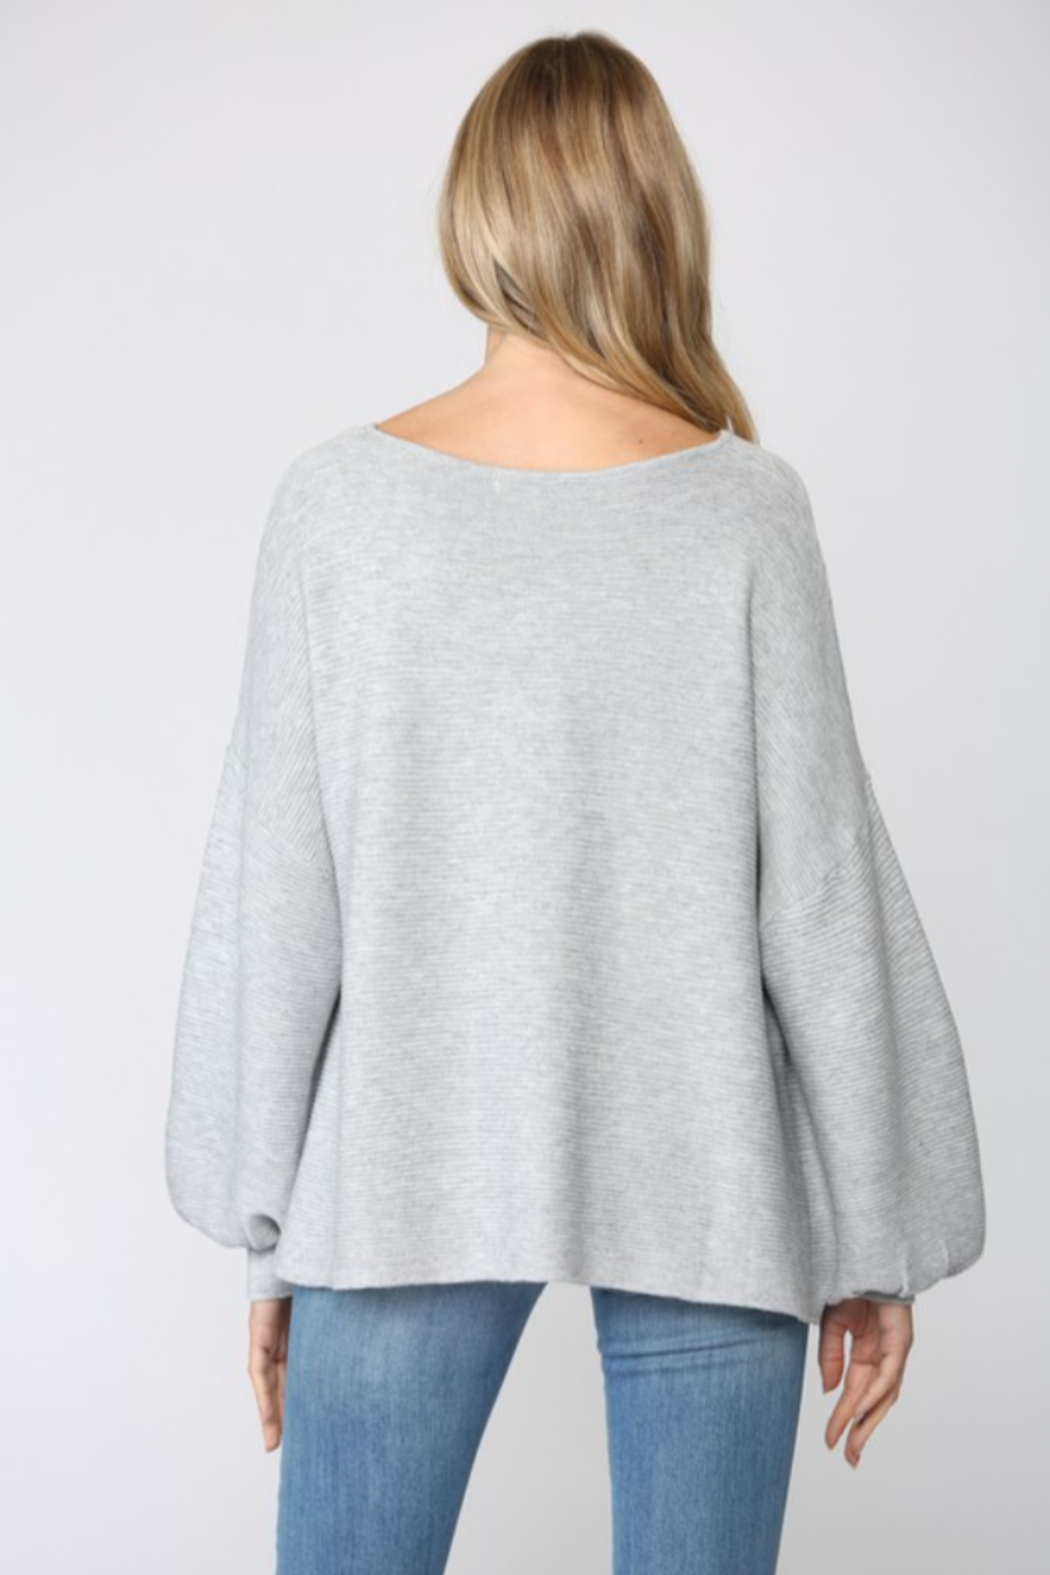 Fate Ribbed Knit Oversized Dolman Sweater - Side Cropped Image